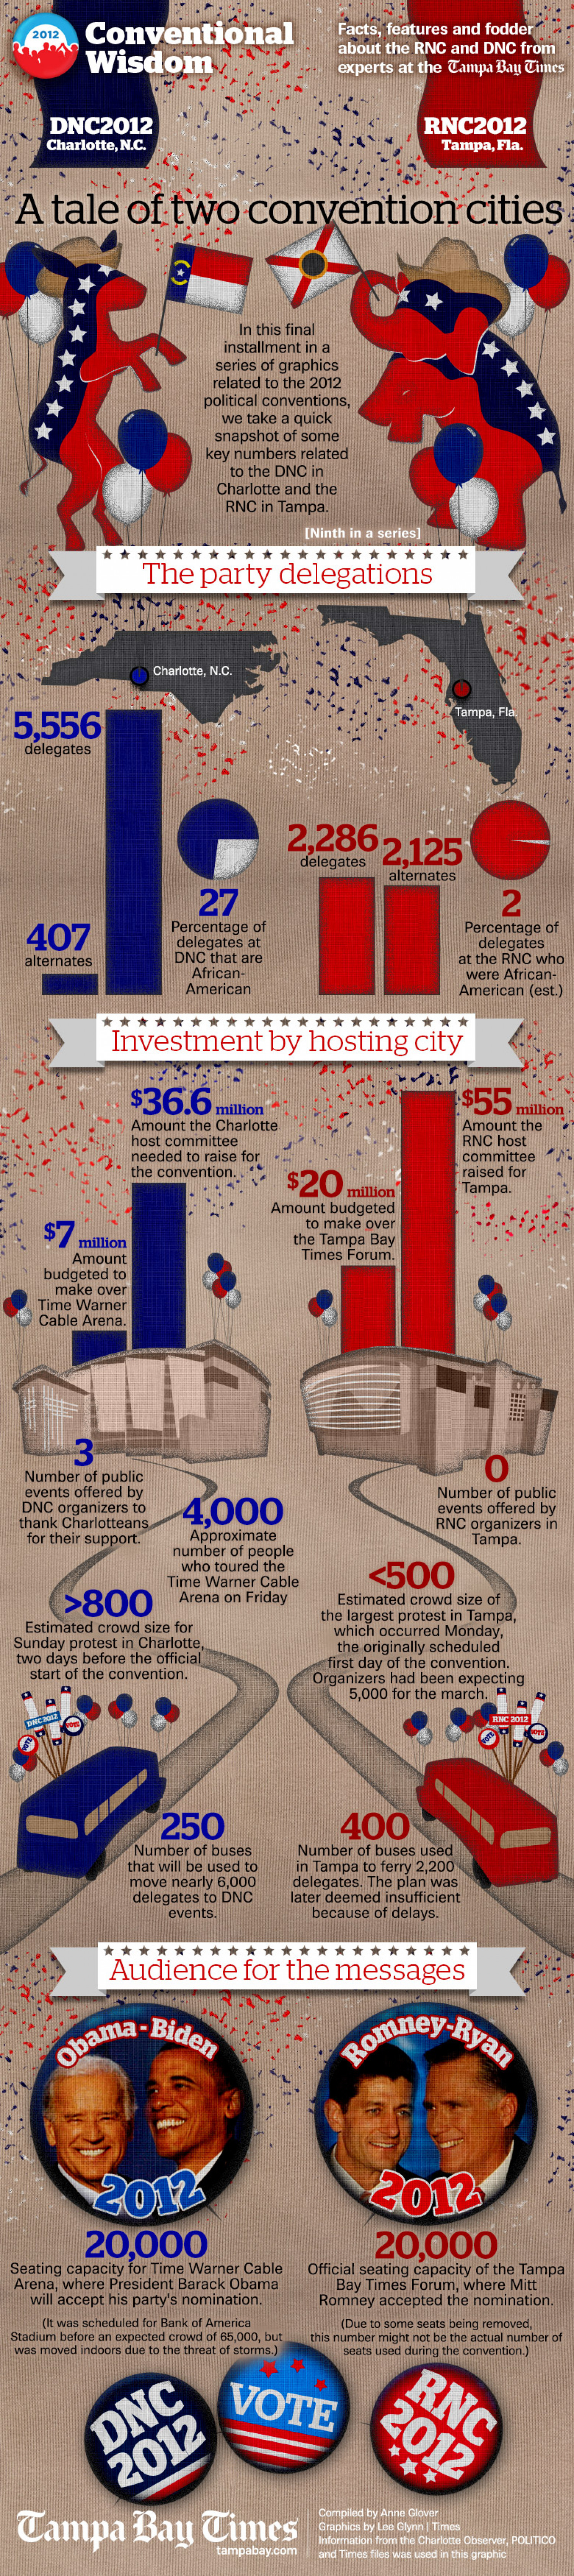 Conventional Wisdom: DNC2012 facts and figures Infographic